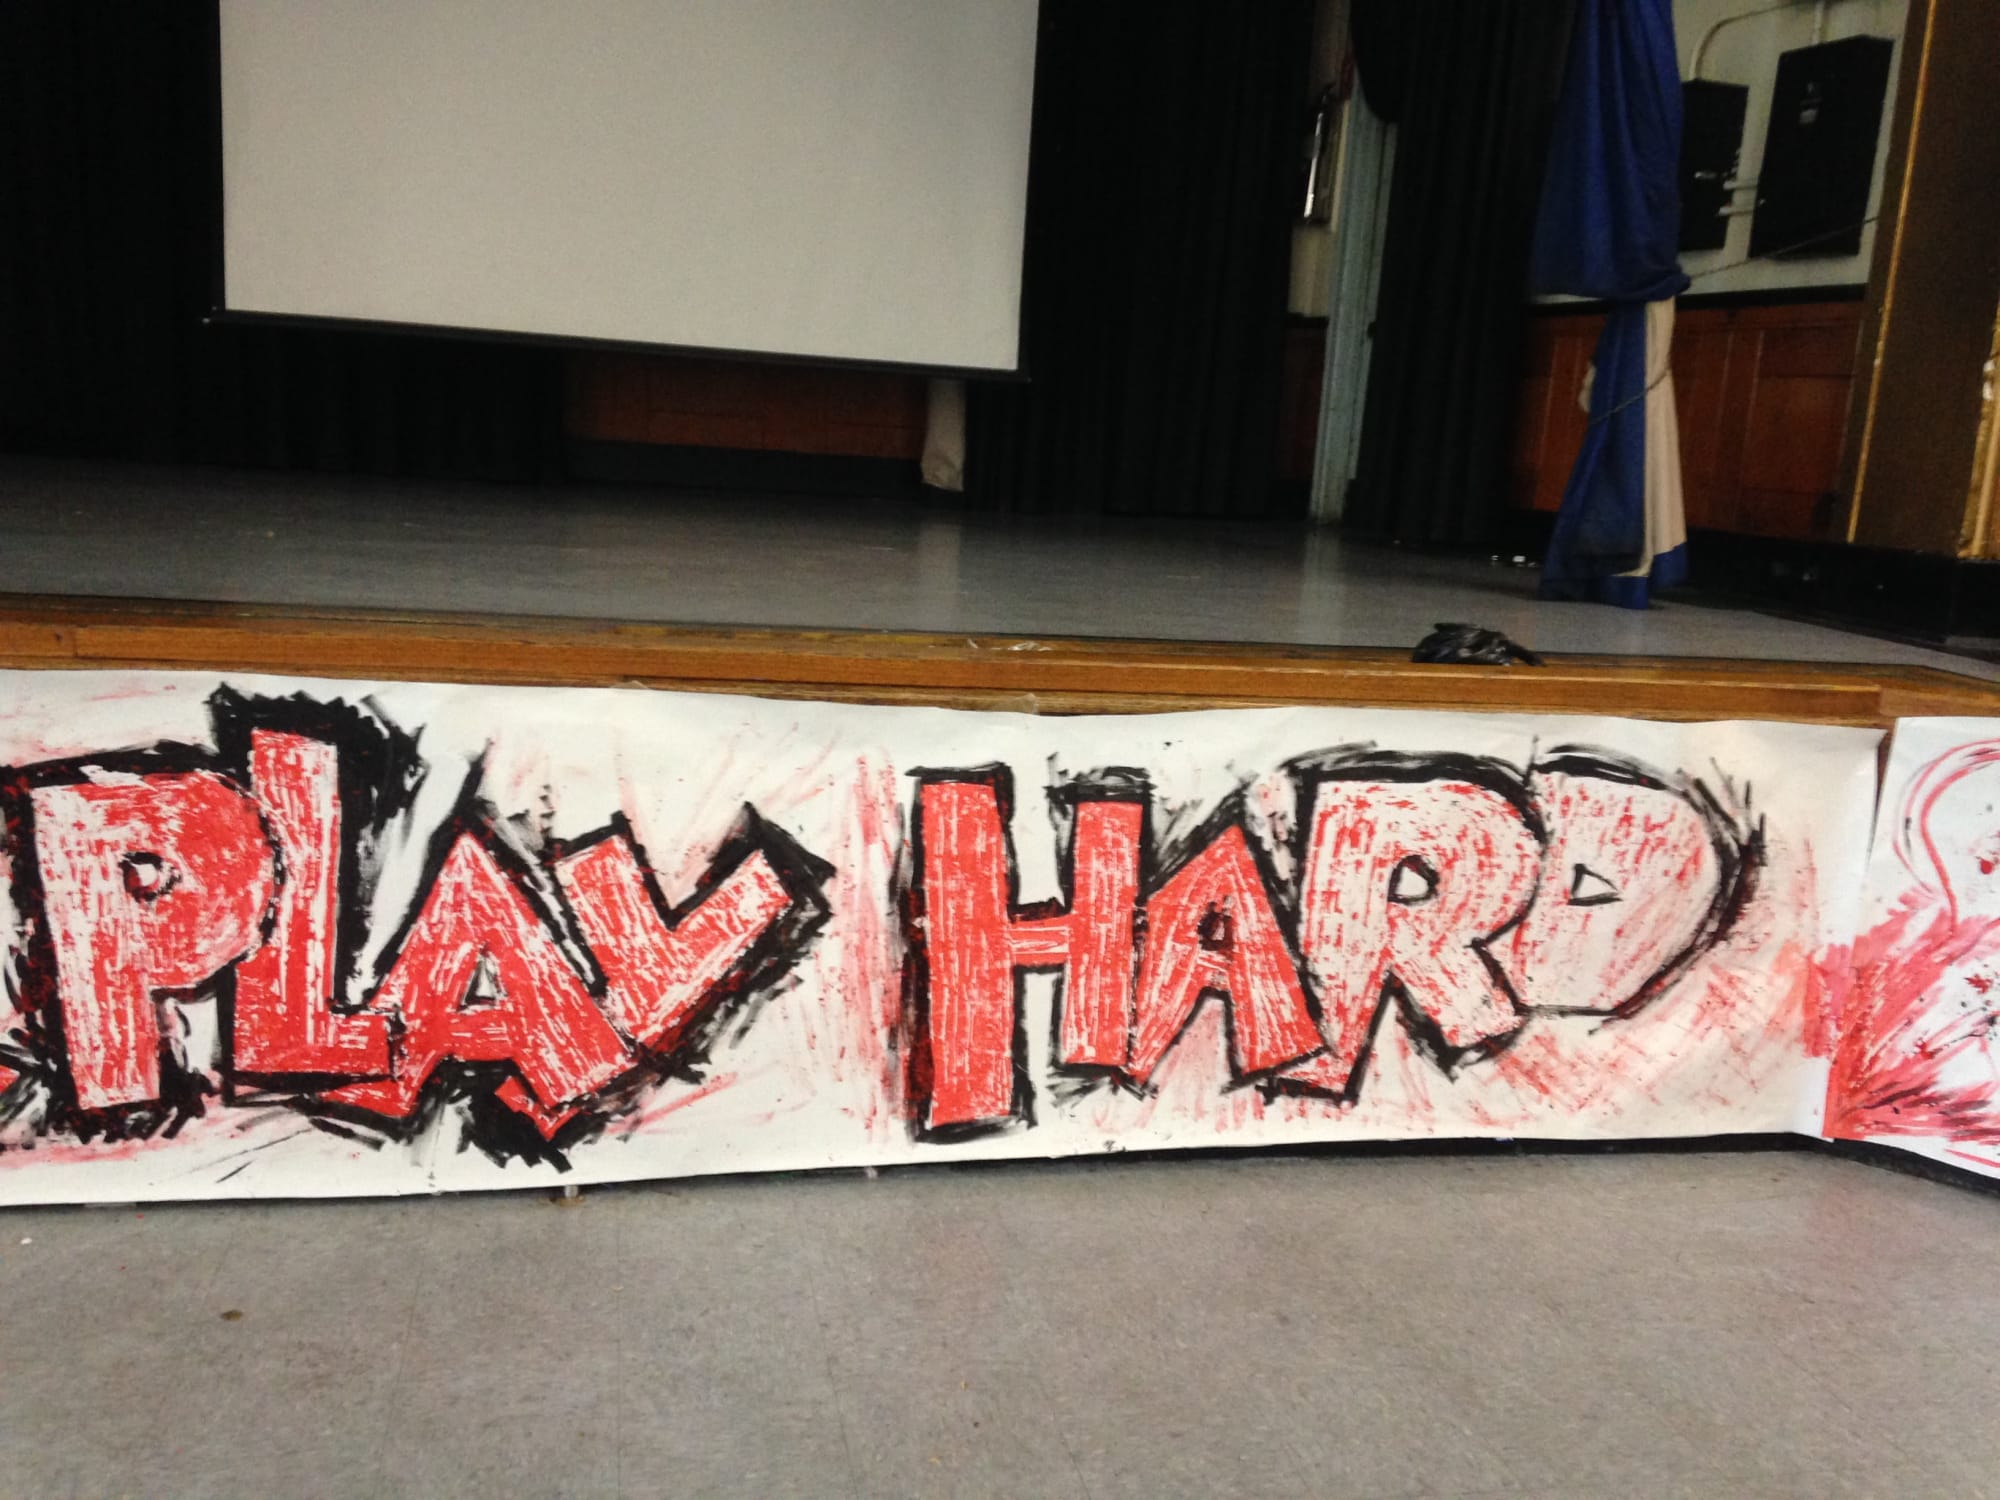 Murals by Rich T. seen at Harlem, New York - Work Hard, Play Hard